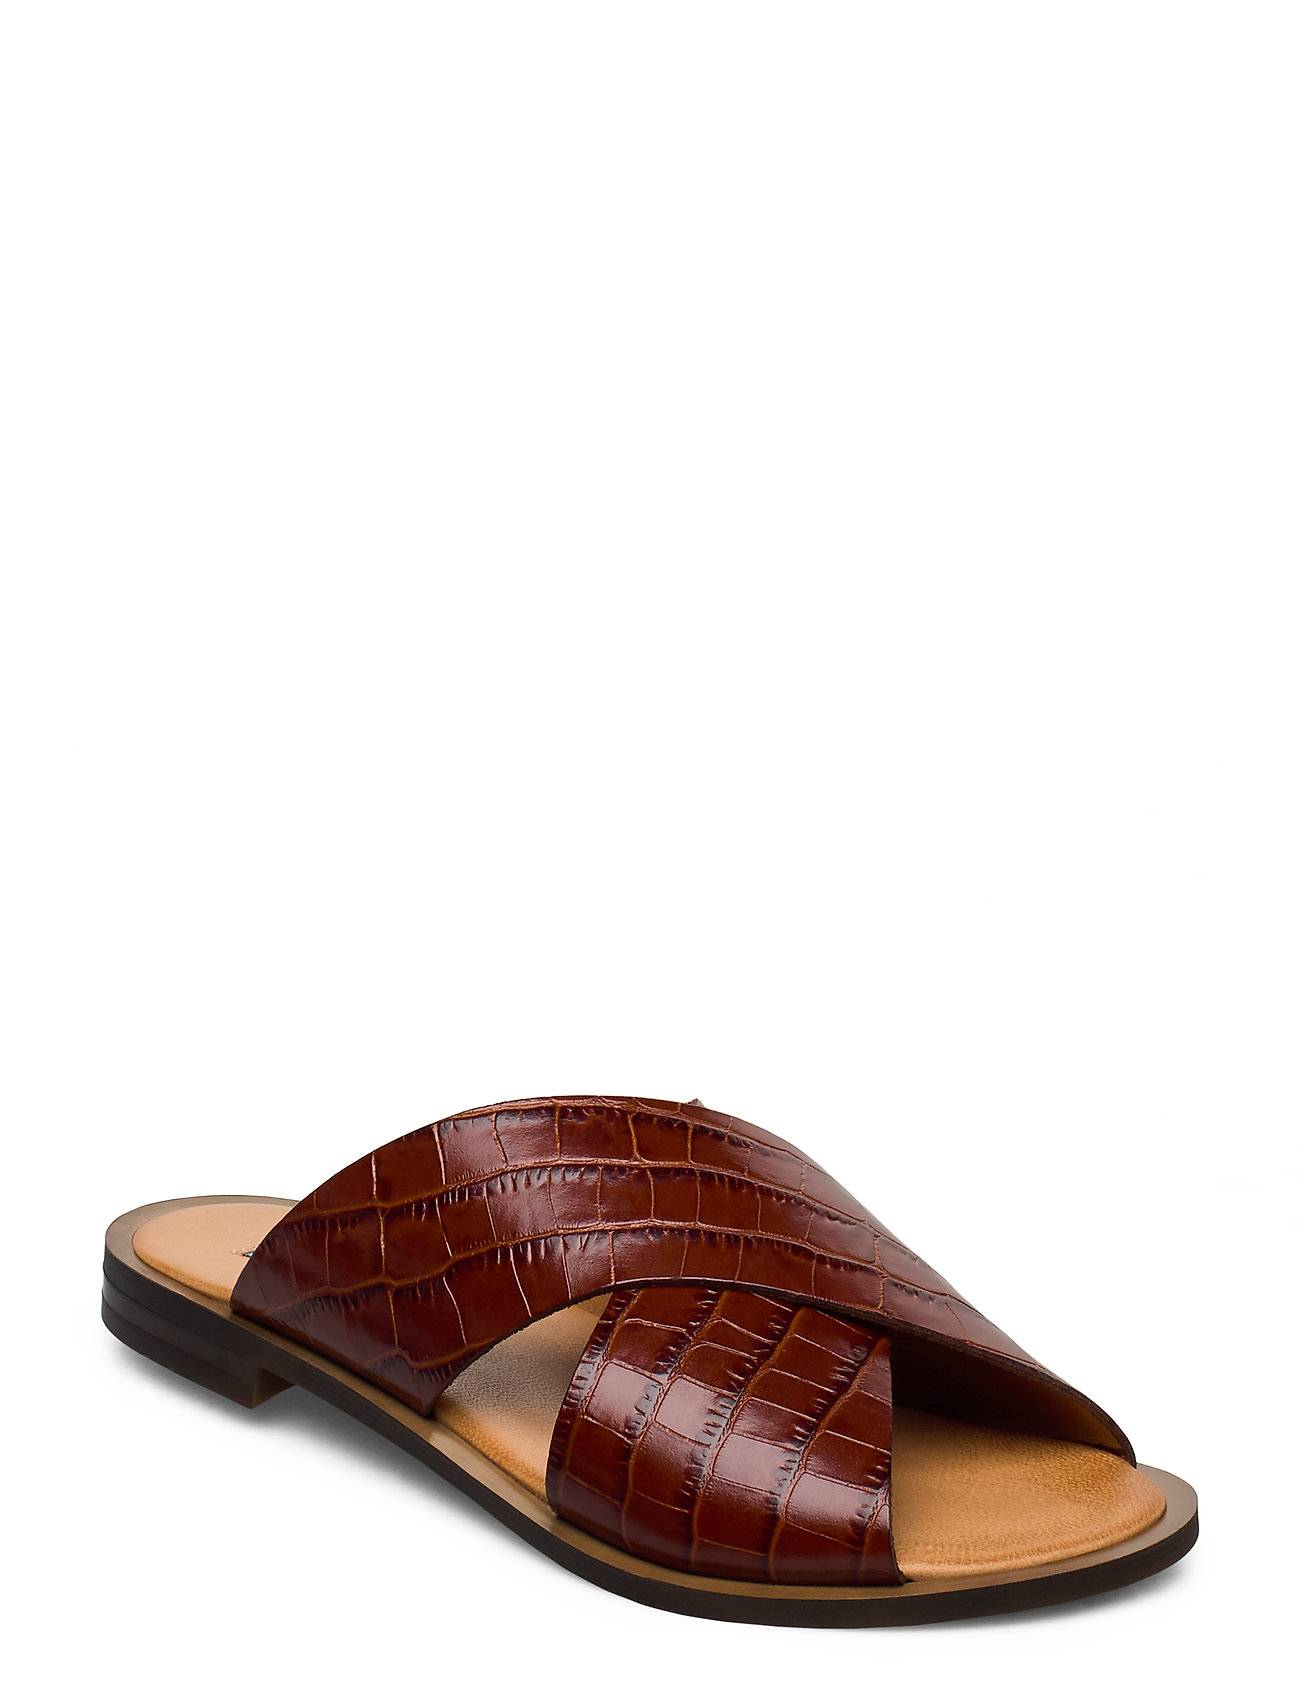 Apair Wide Cross Round Shoes Summer Shoes Flat Sandals Ruskea Apair